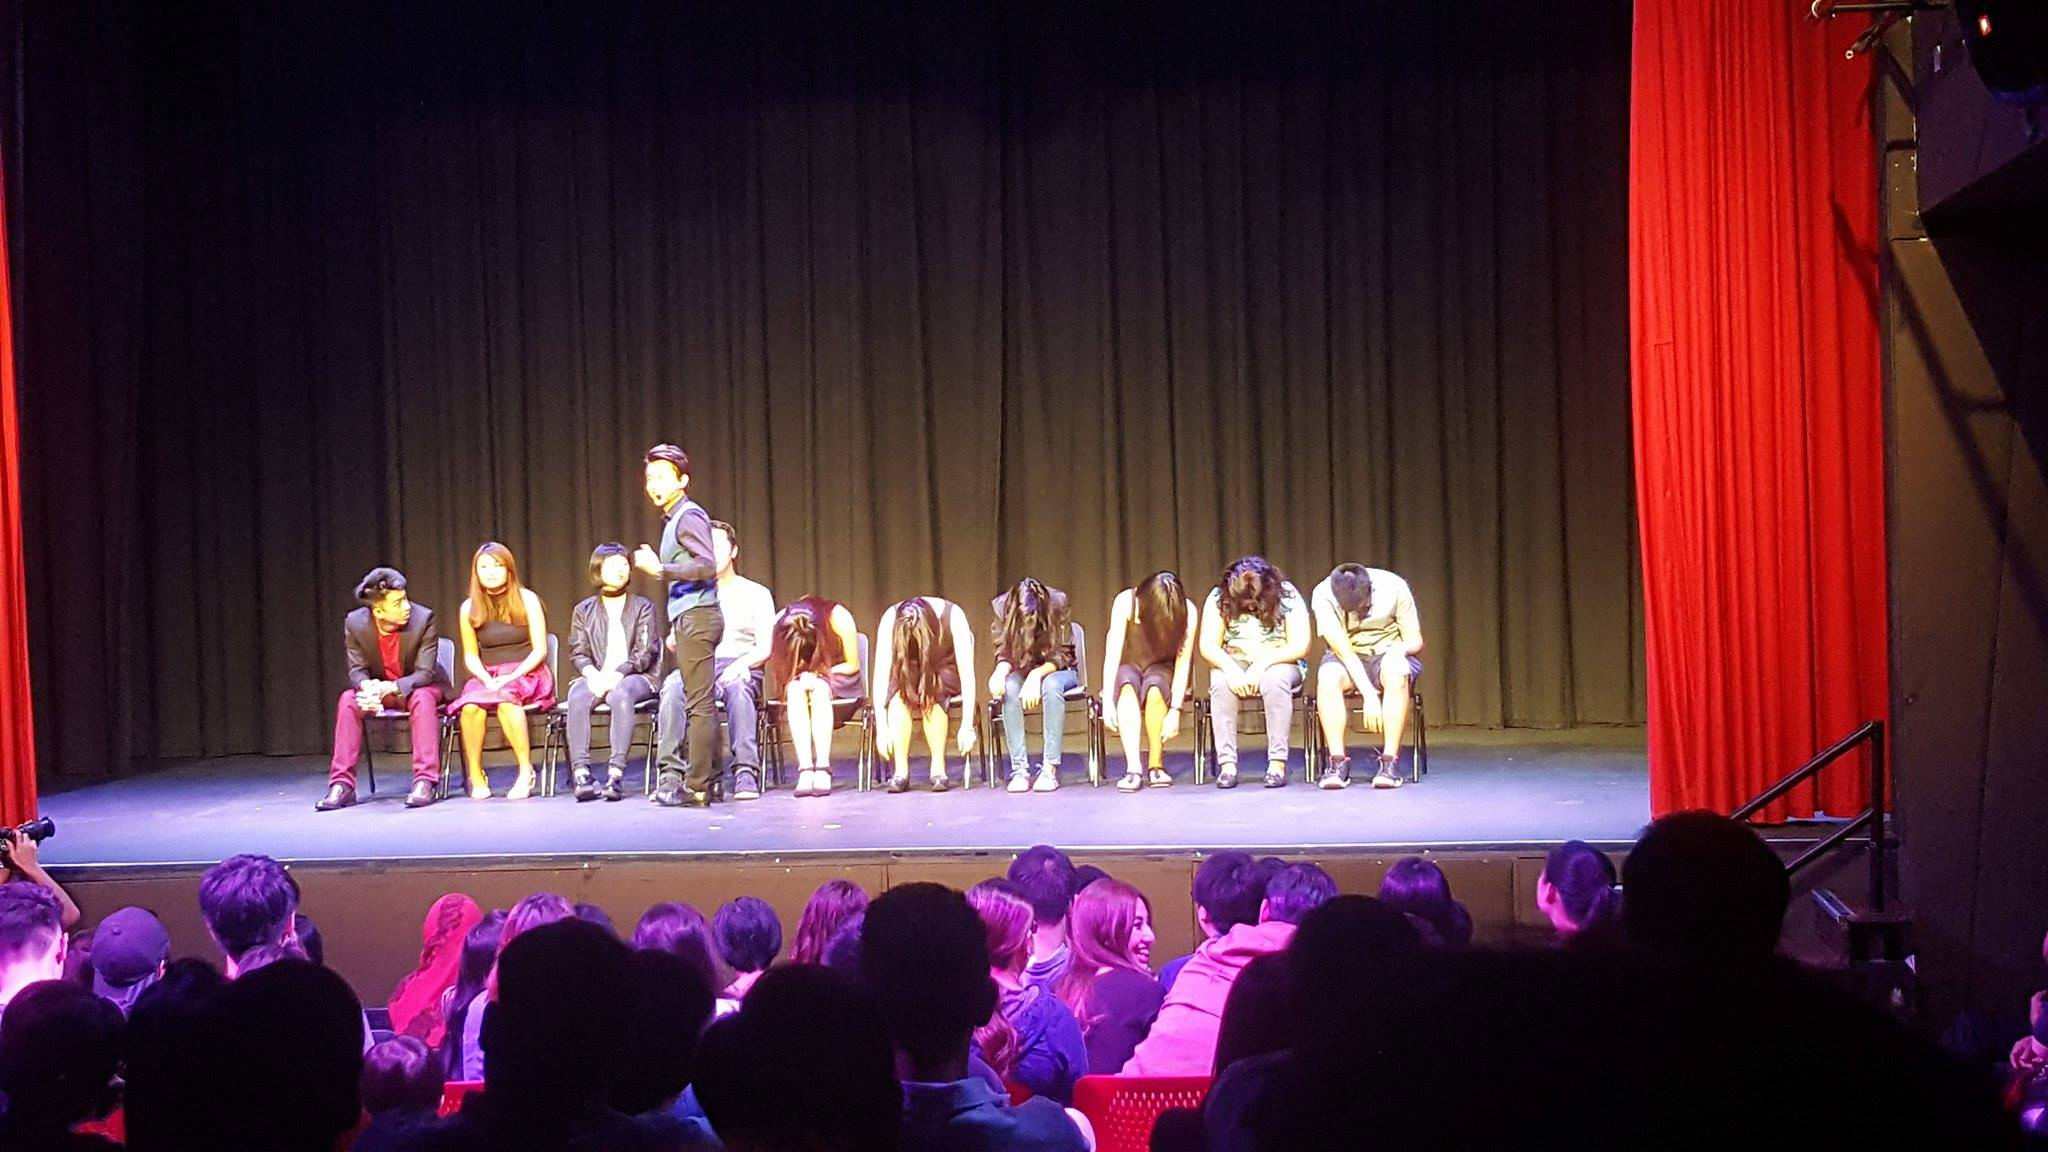 How I Got Literally Hypnotized Watching A Stage Hypnosis Show